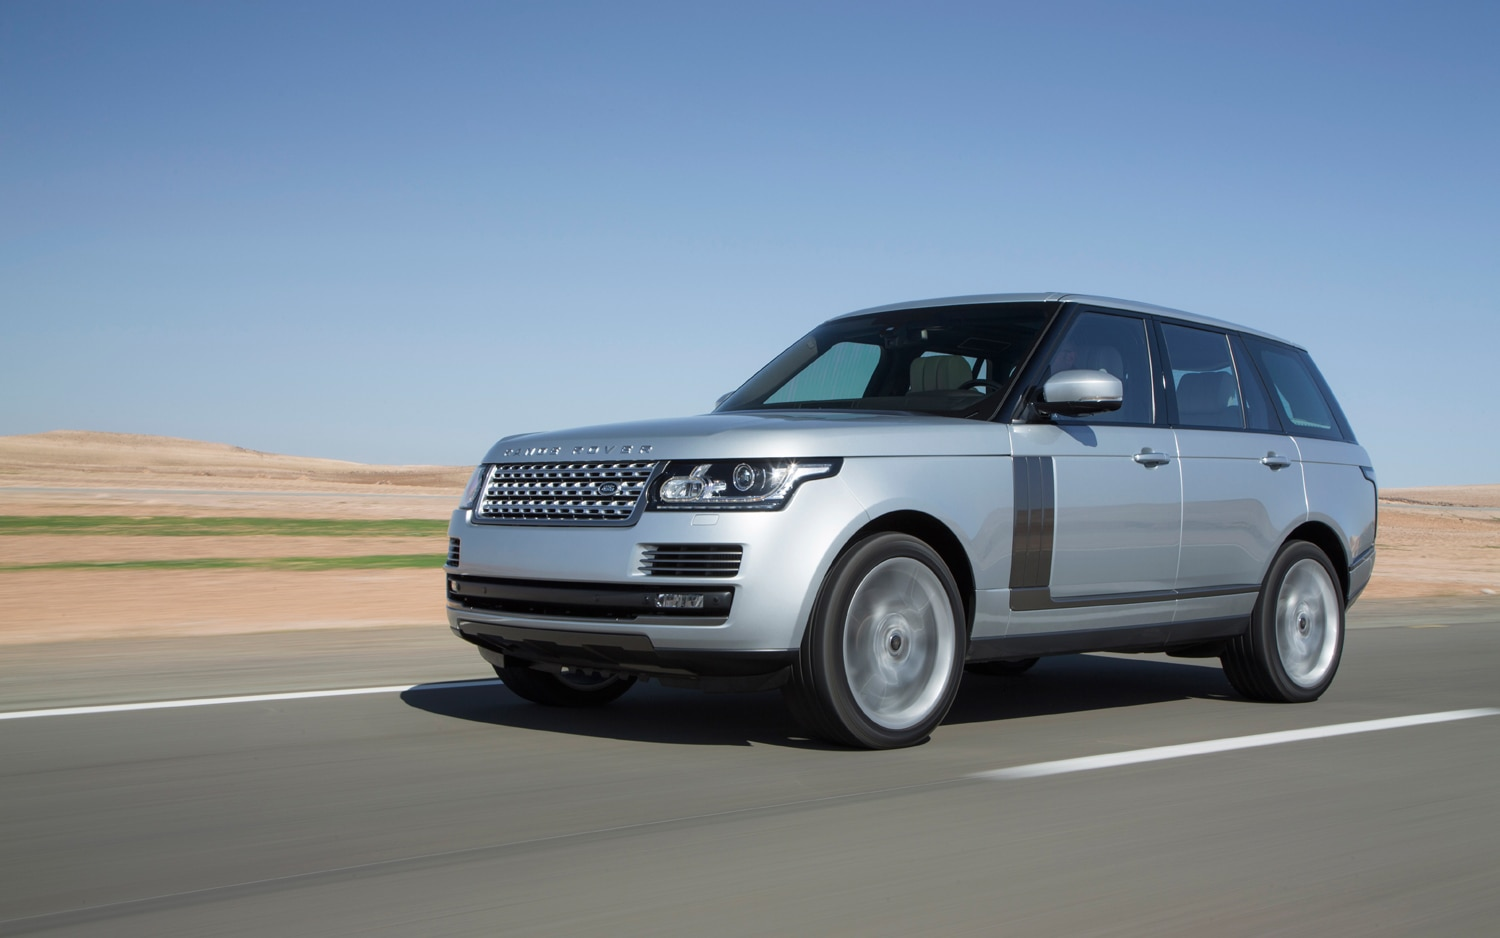 2013 Land Rover Range Rover IndusSilver Front Left Side View1